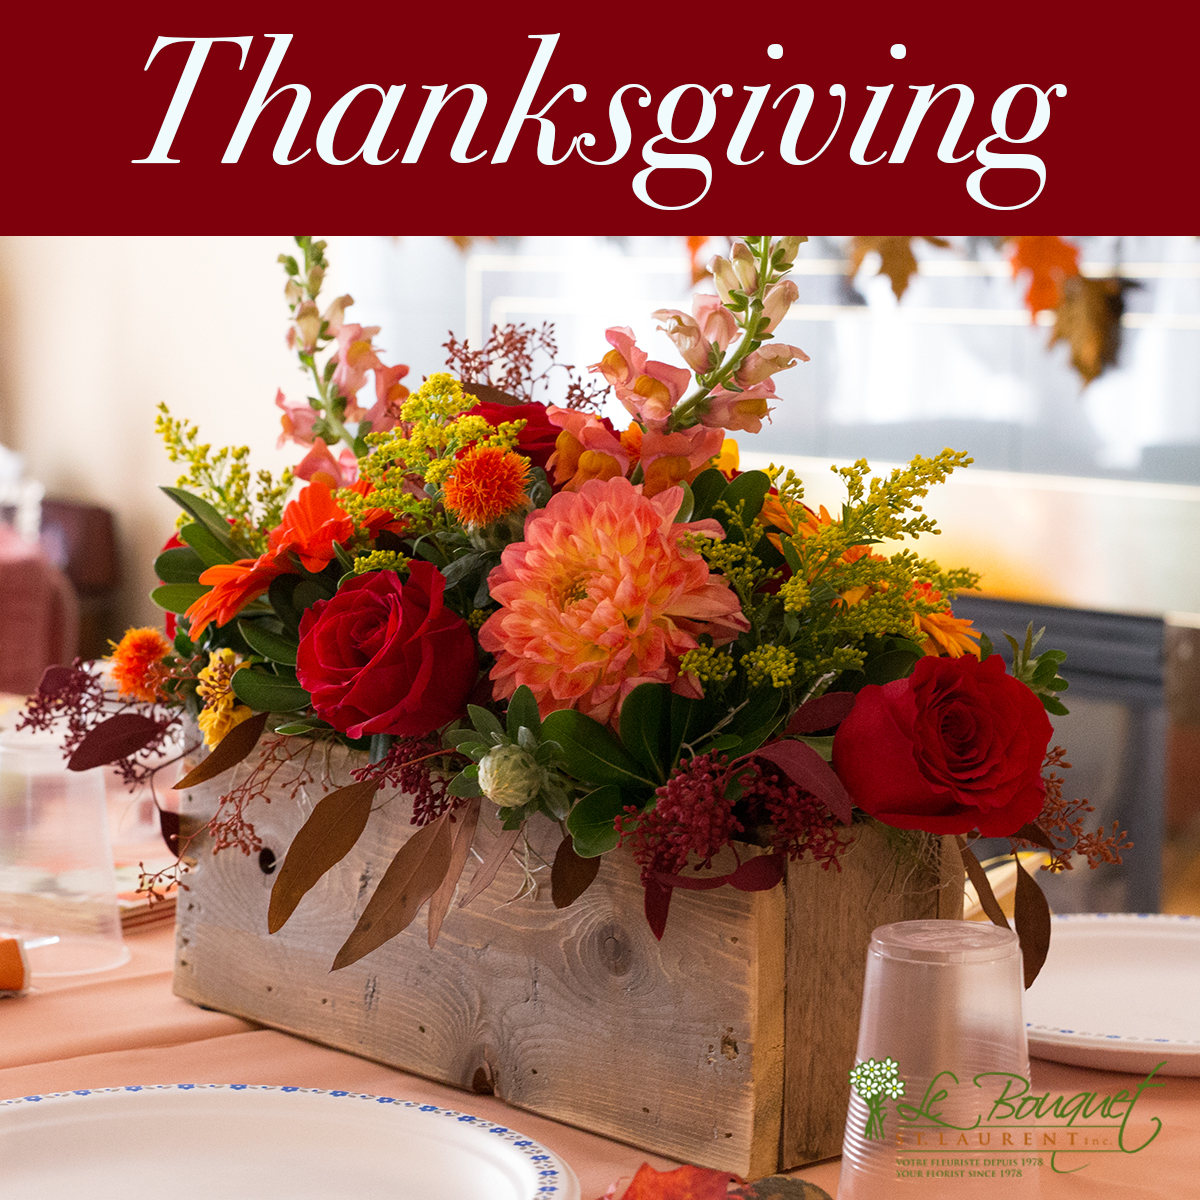 decorating thanksgiving with flowers by Le Bouquet St Laurent